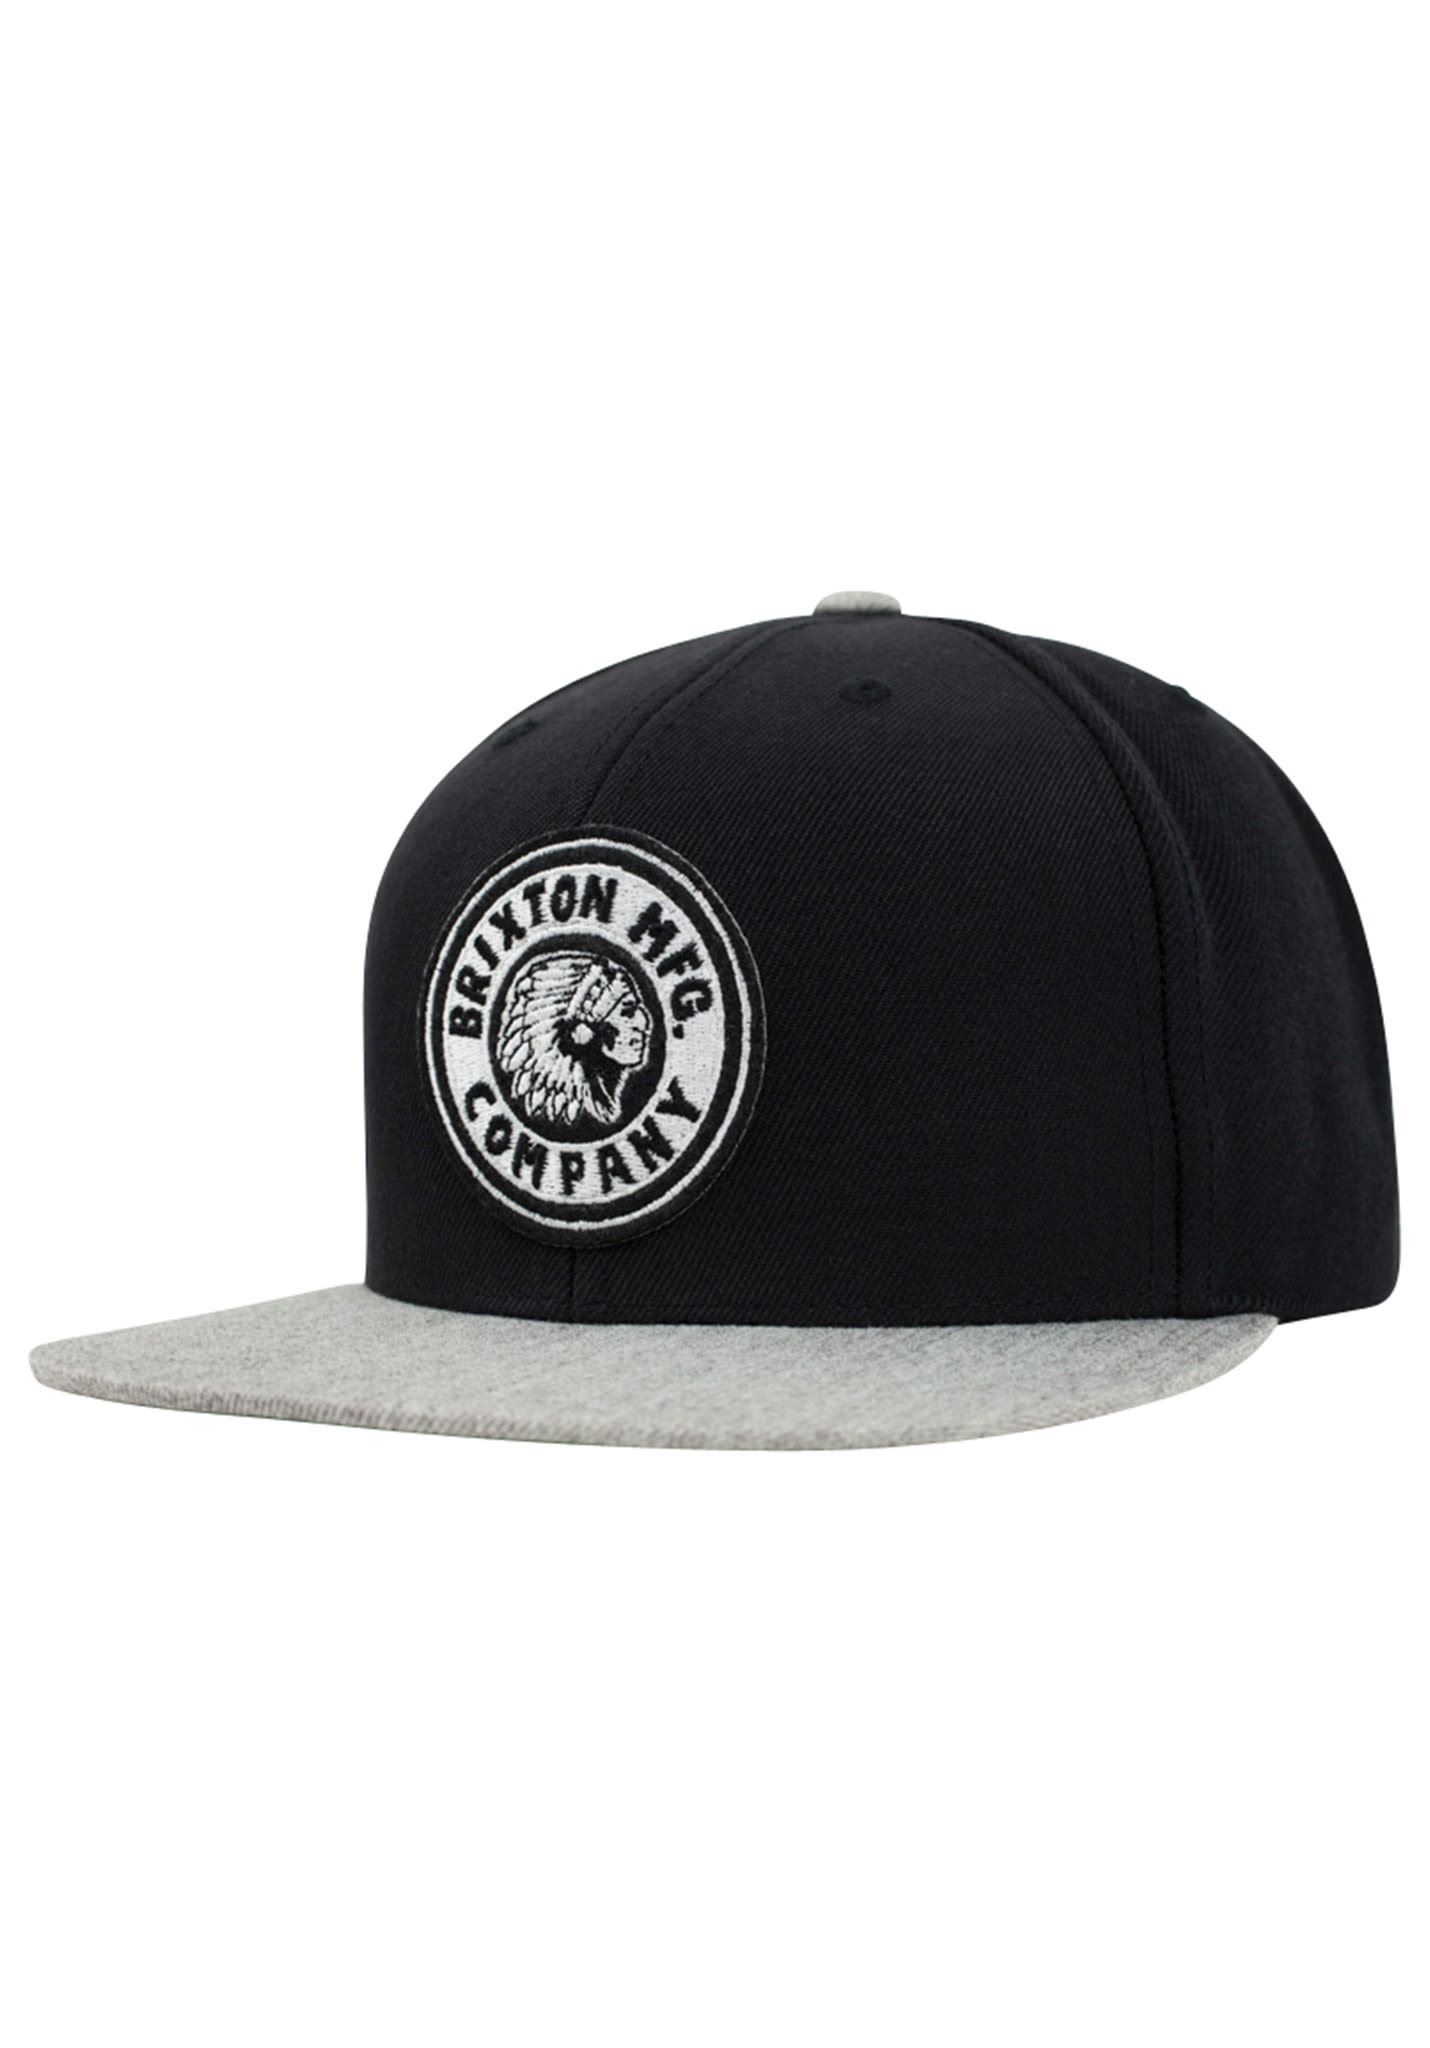 f7b55561 BRIXTON Rival - Snapback Cap - Black - Planet Sports